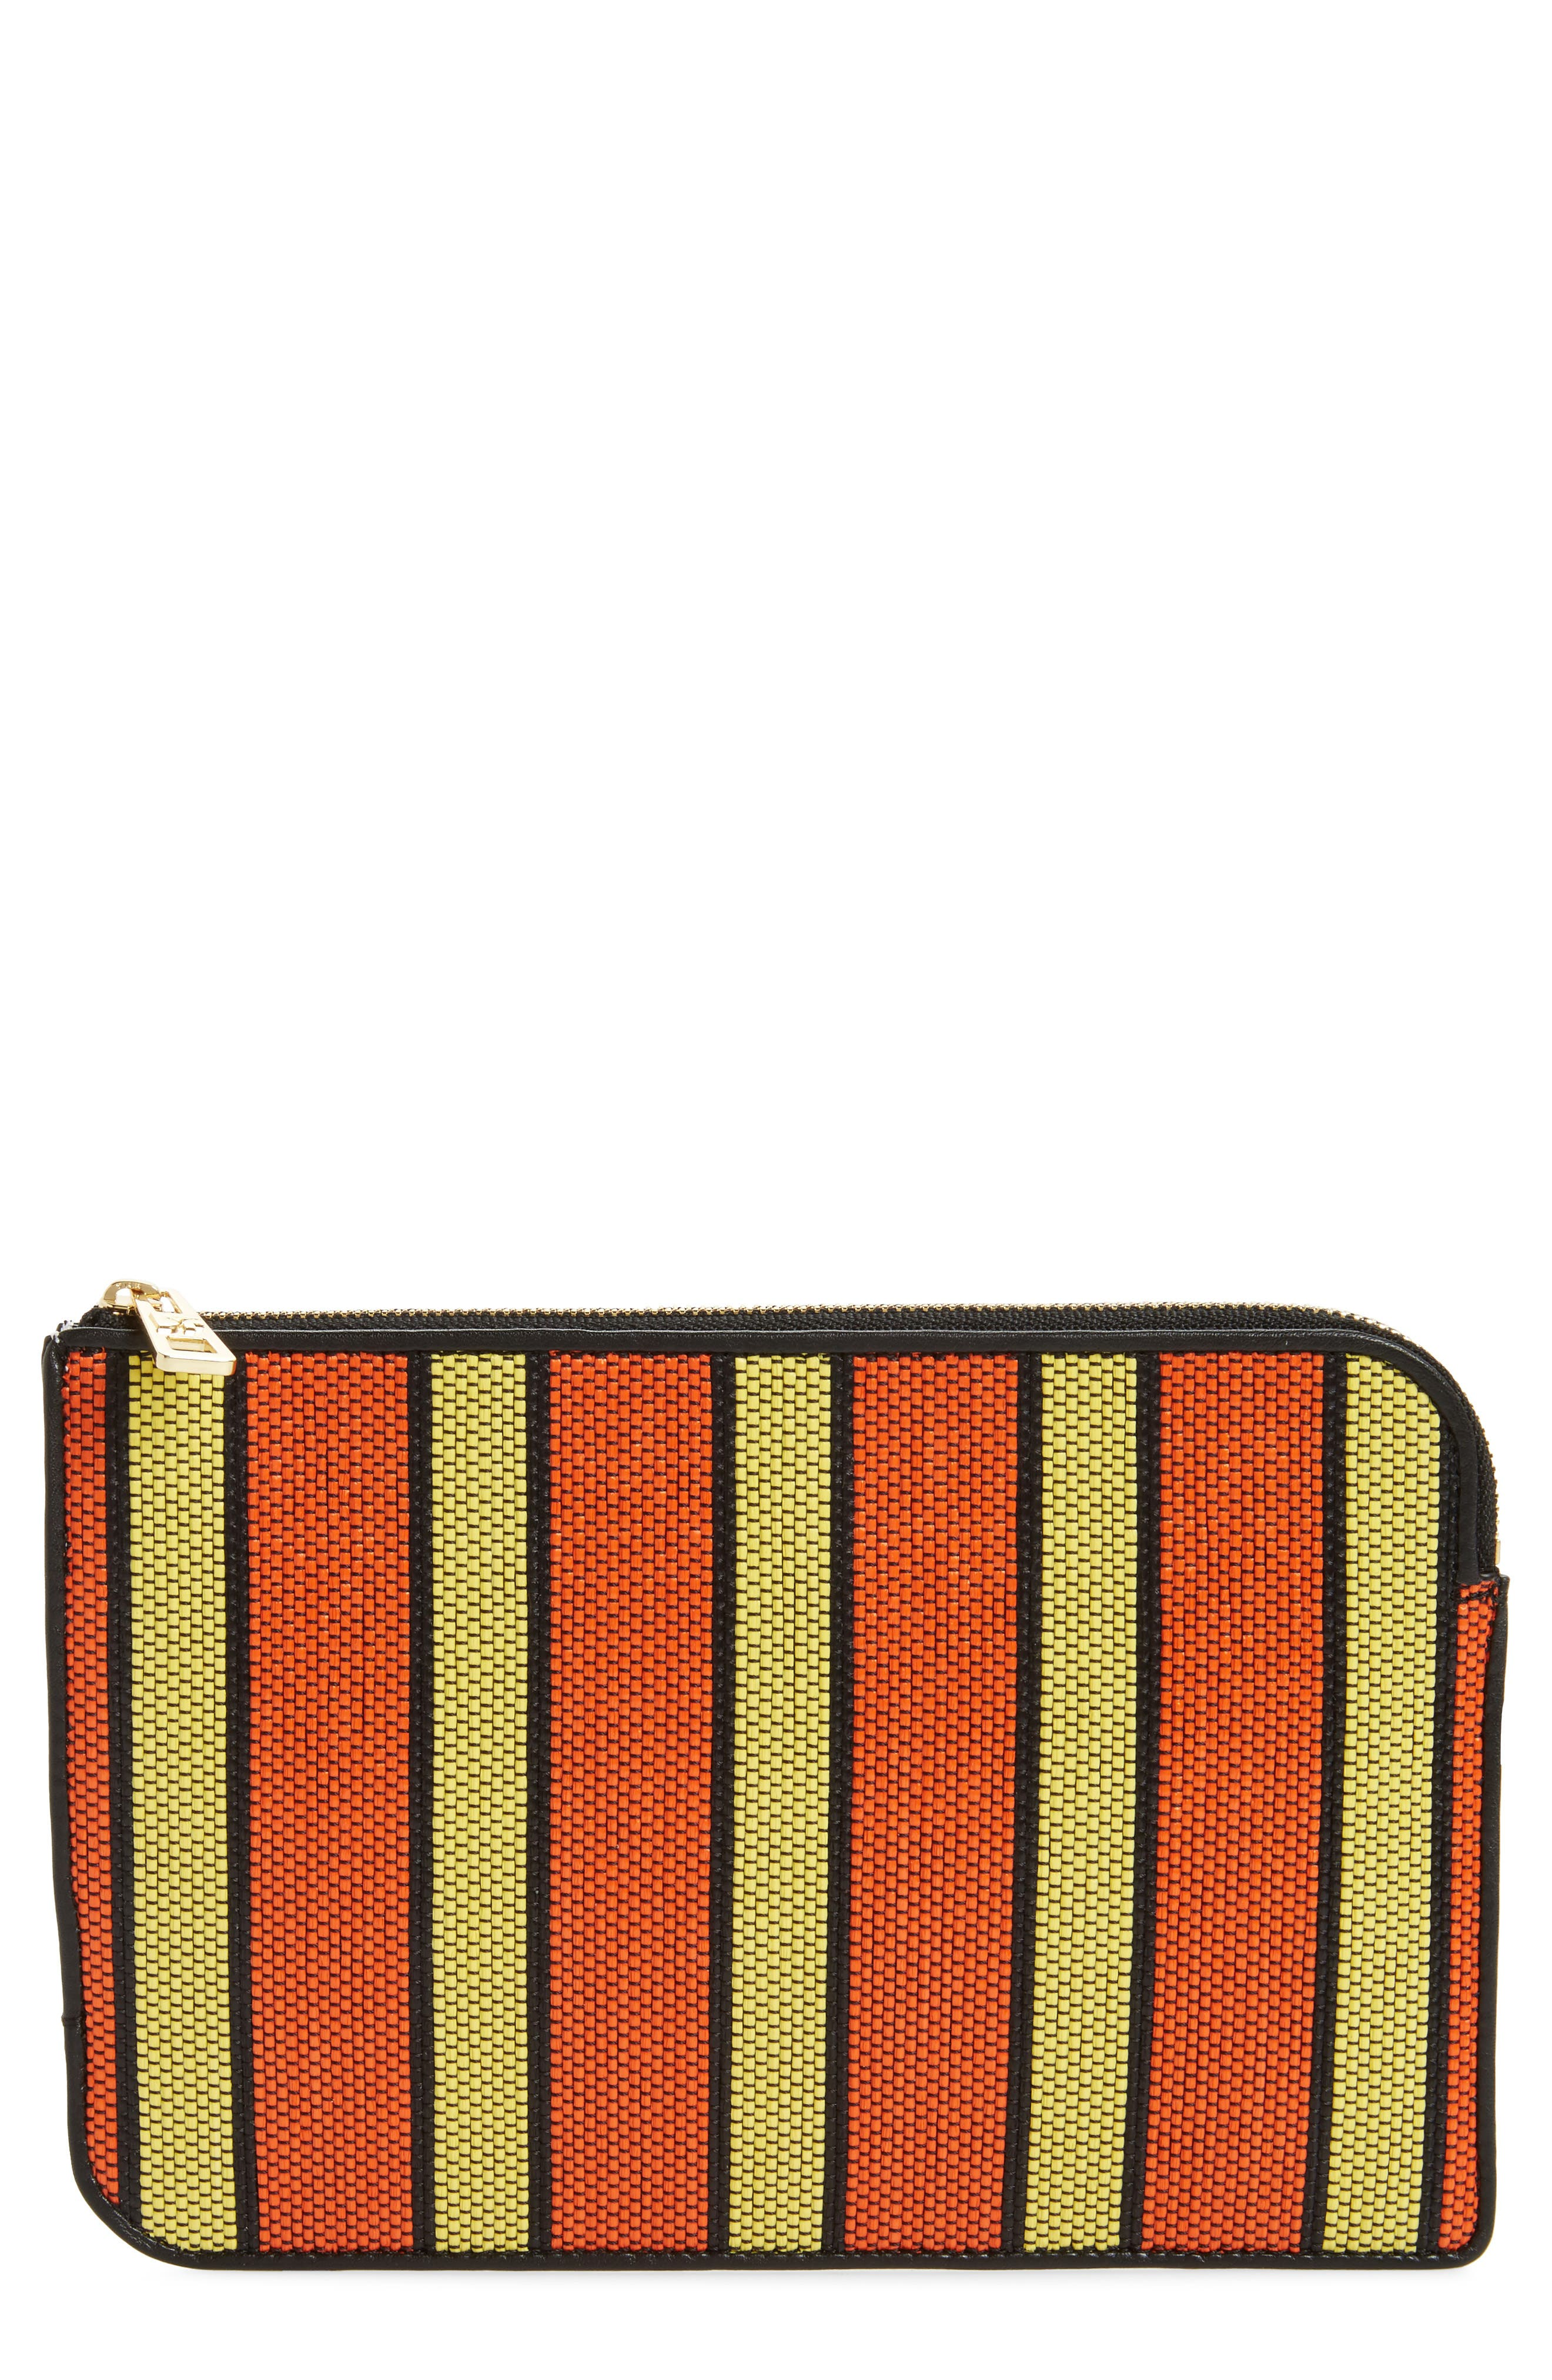 Medium Zip Pouch,                         Main,                         color, 800